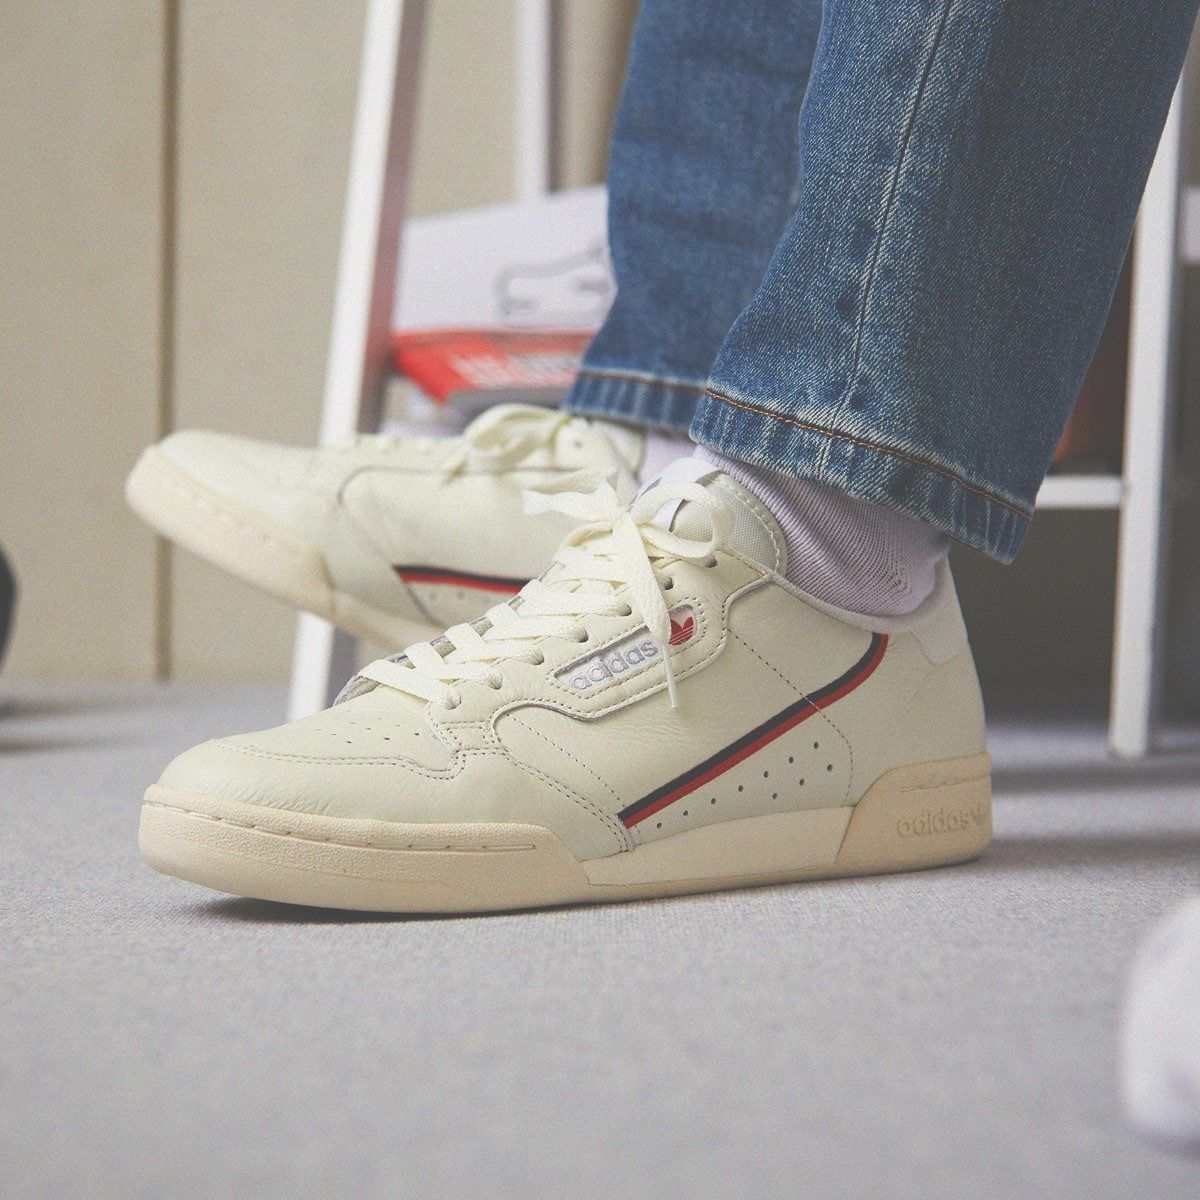 adidas Originals Continental 80 | Adidas originals outfit ...